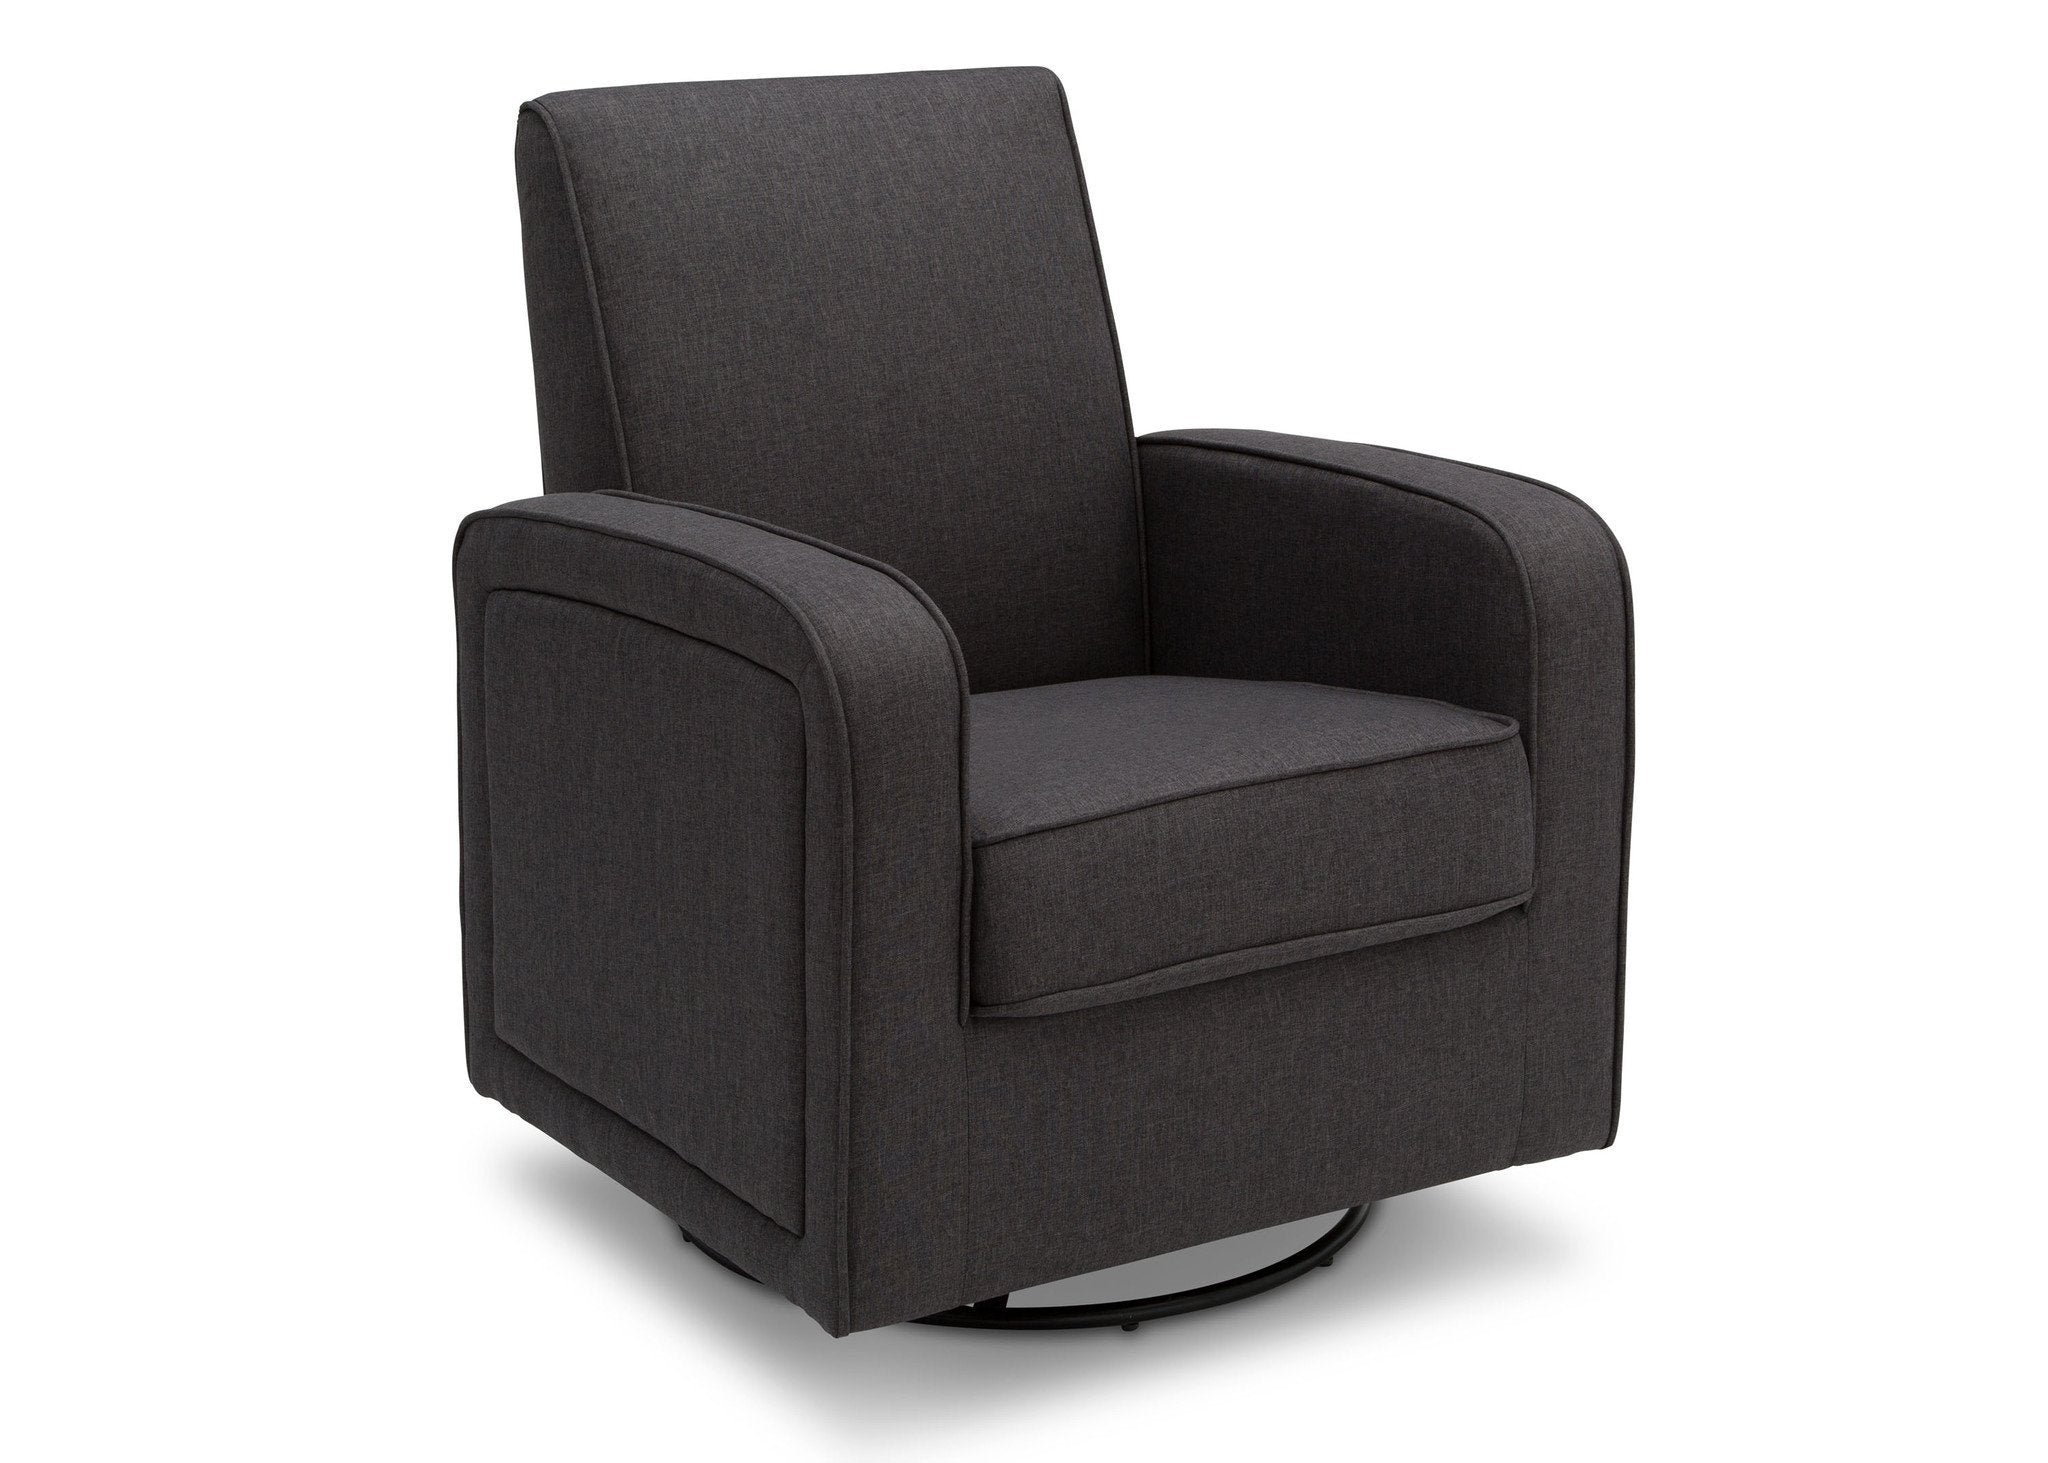 Delta Children Charcoal (931) Charlotte Nursery Glider Swivel Rocker Chair,  right side view c3c